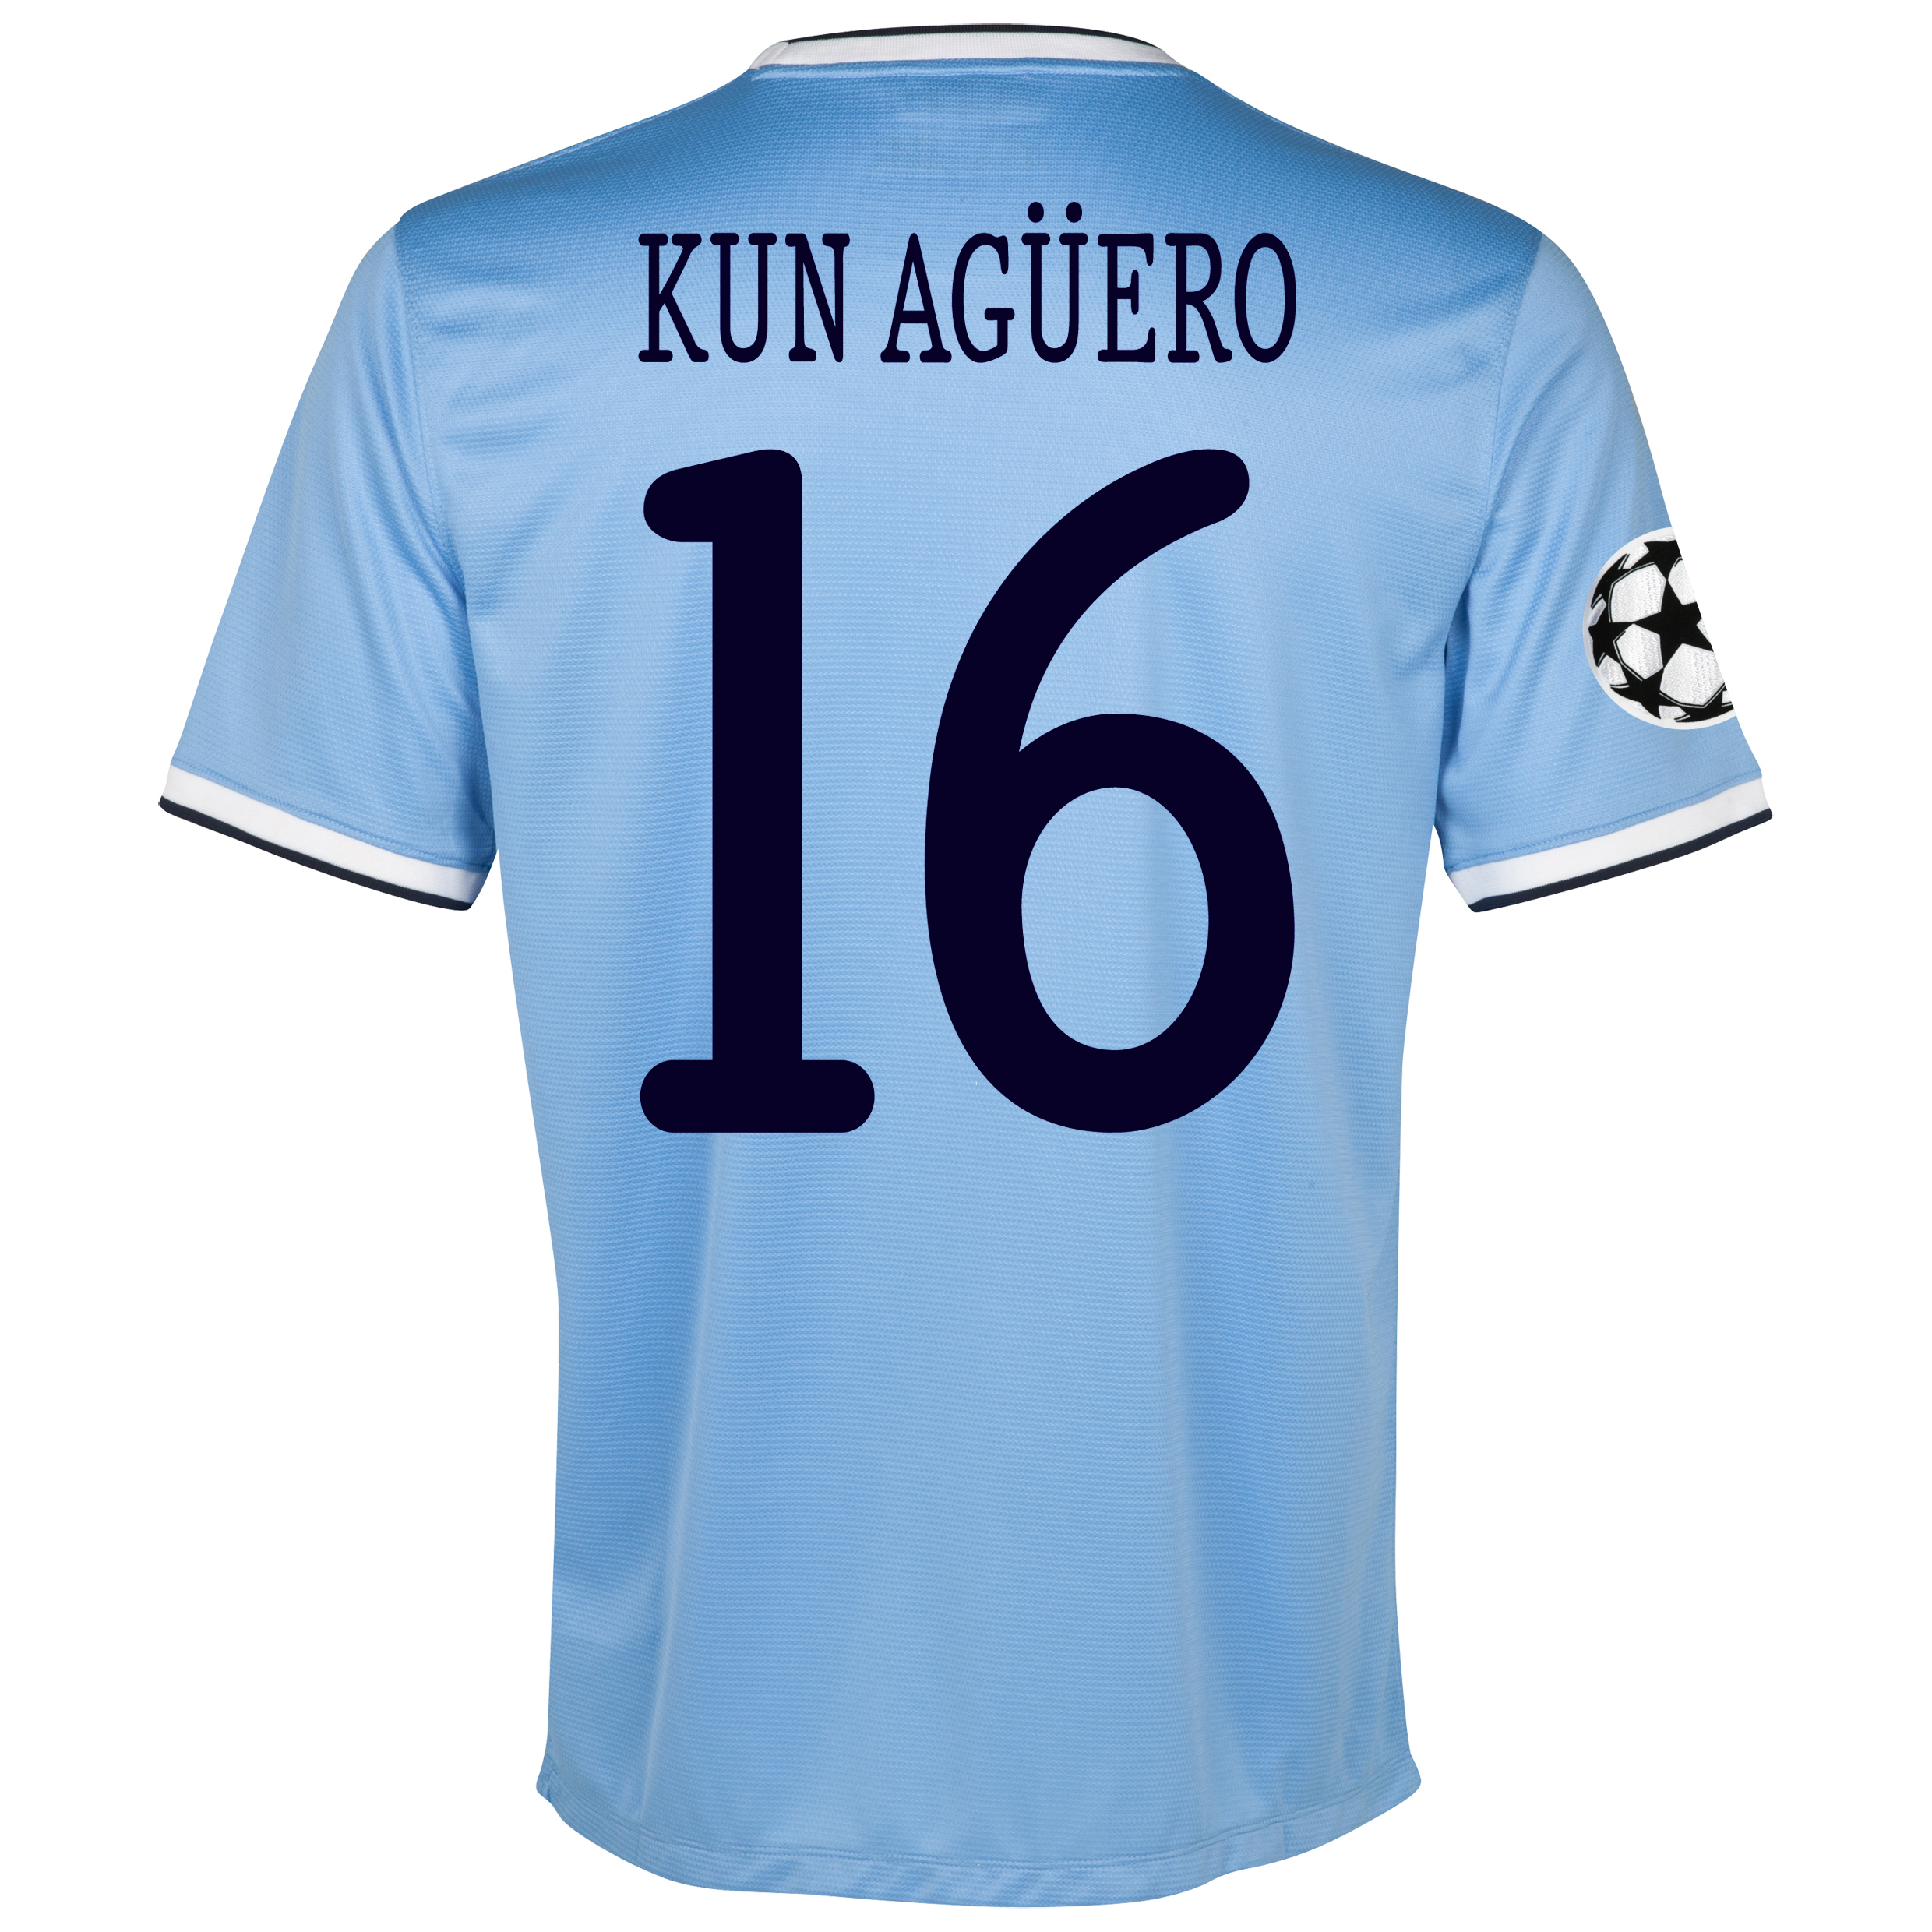 Manchester City UEFA Champions League Home Shirt 2013/14 - Junior with Kun Agüero  16 printing